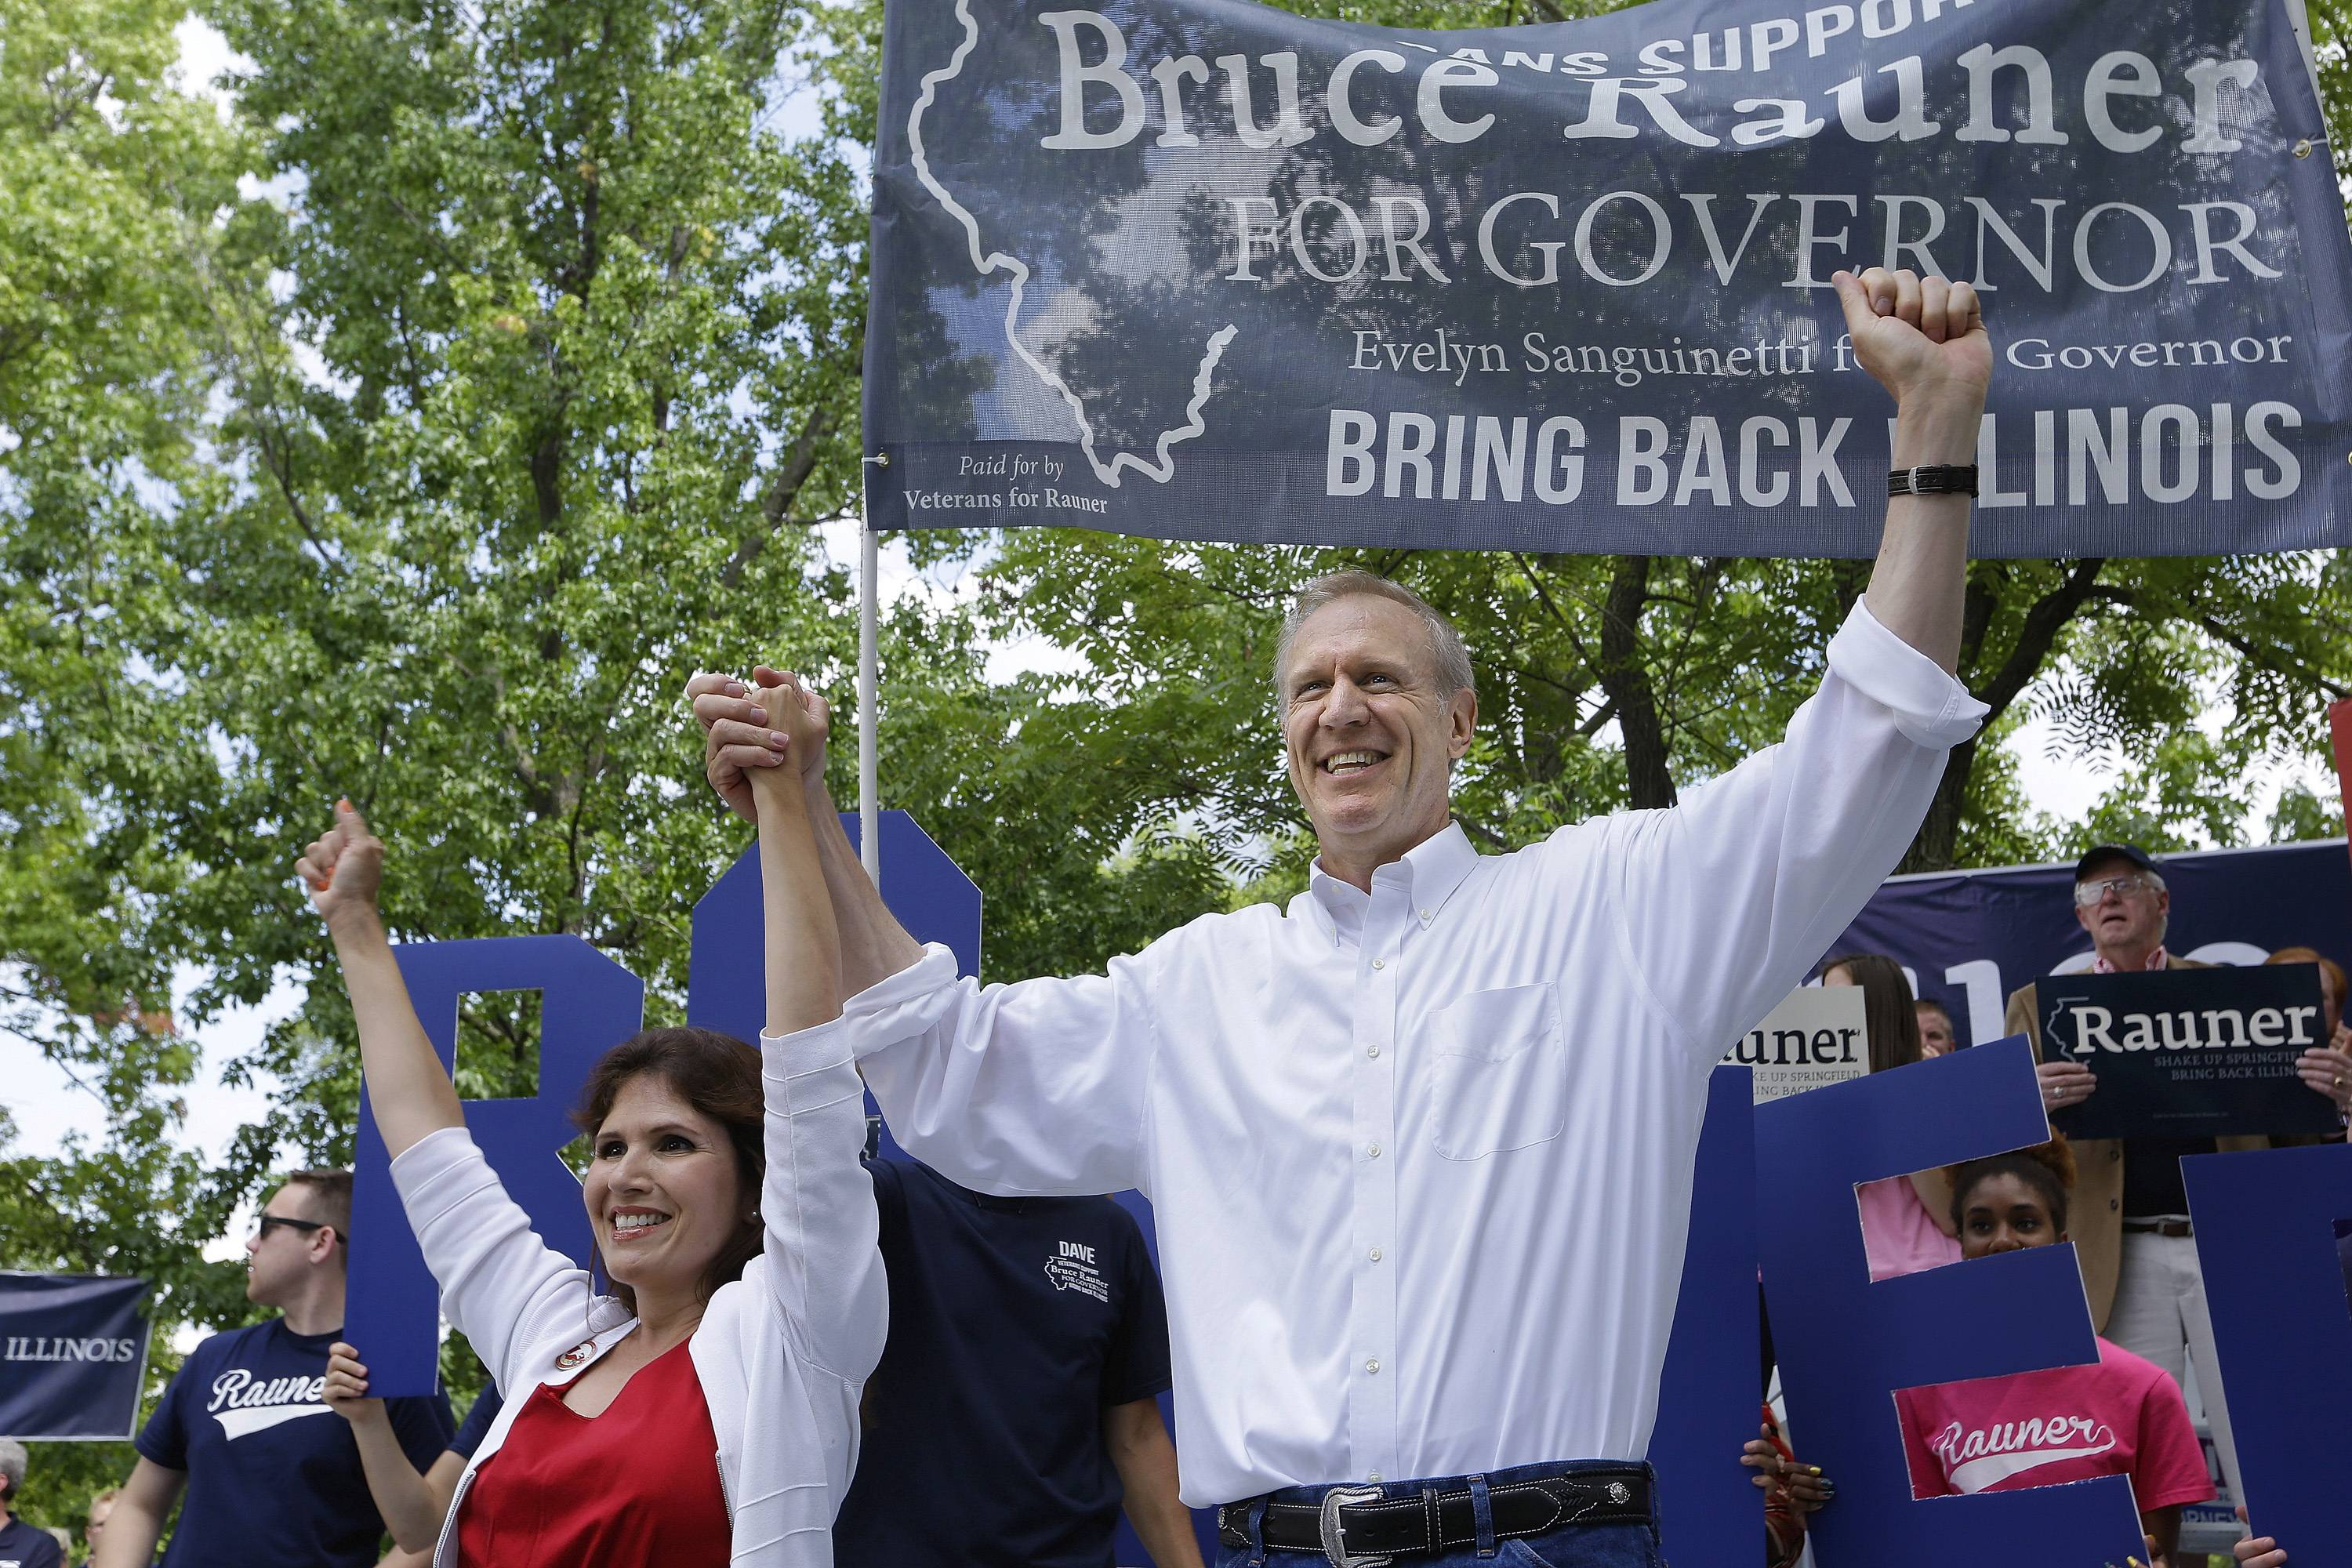 Governor candidate Bruce Rauner and his running mate, Evelyn Sanguinetti of Wheaton, participate in a Republican Day rally Thursday at the Illinois State Fair in Springfield.